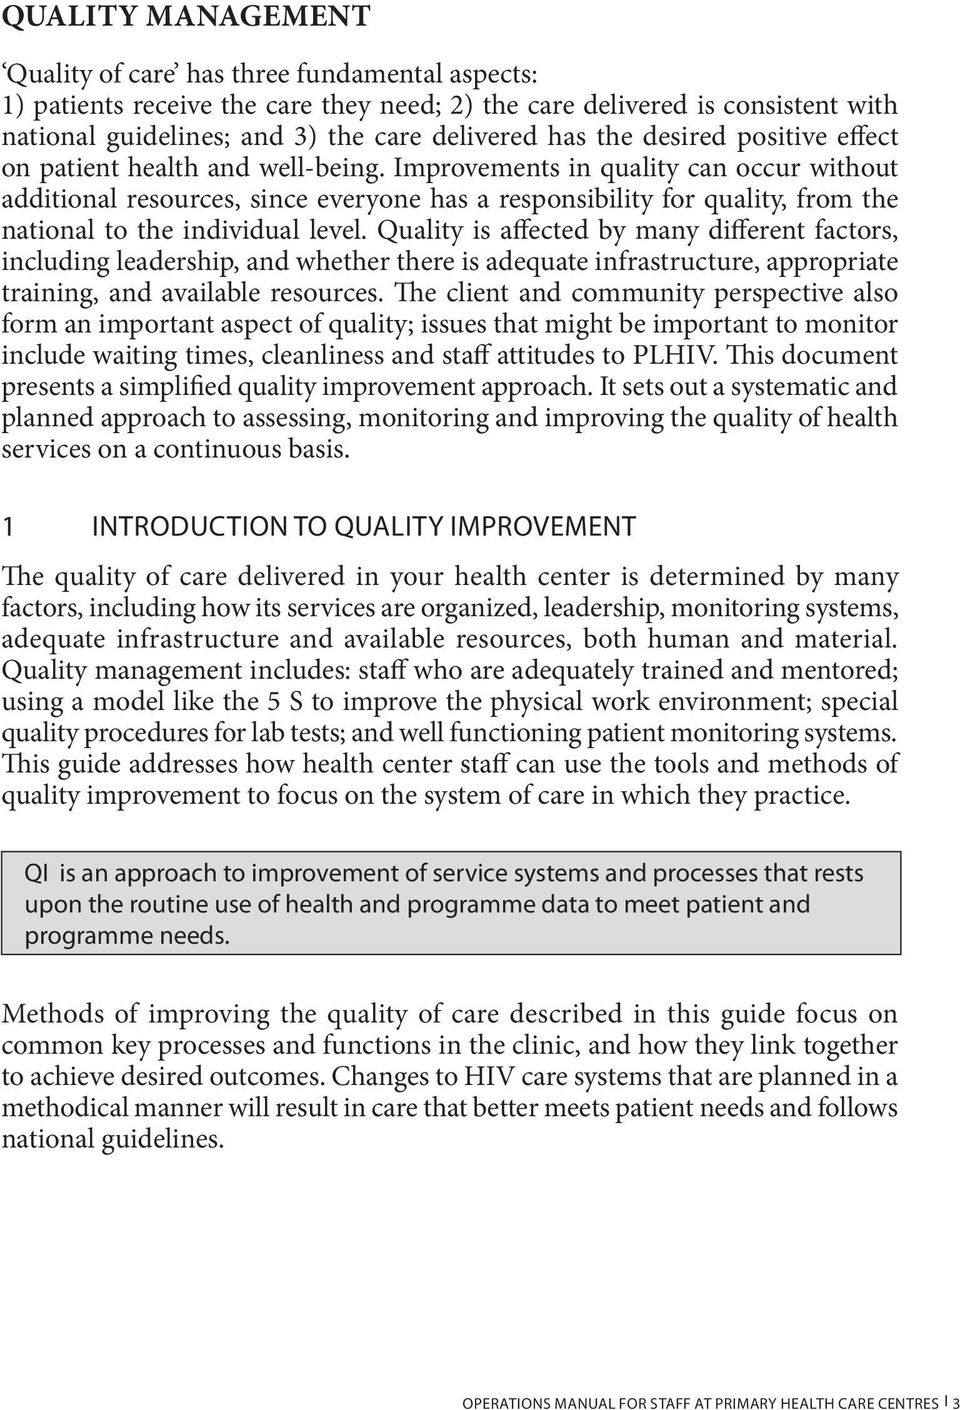 Improvements in quality can occur without additional resources, since everyone has a responsibility for quality, from the national to the individual level.